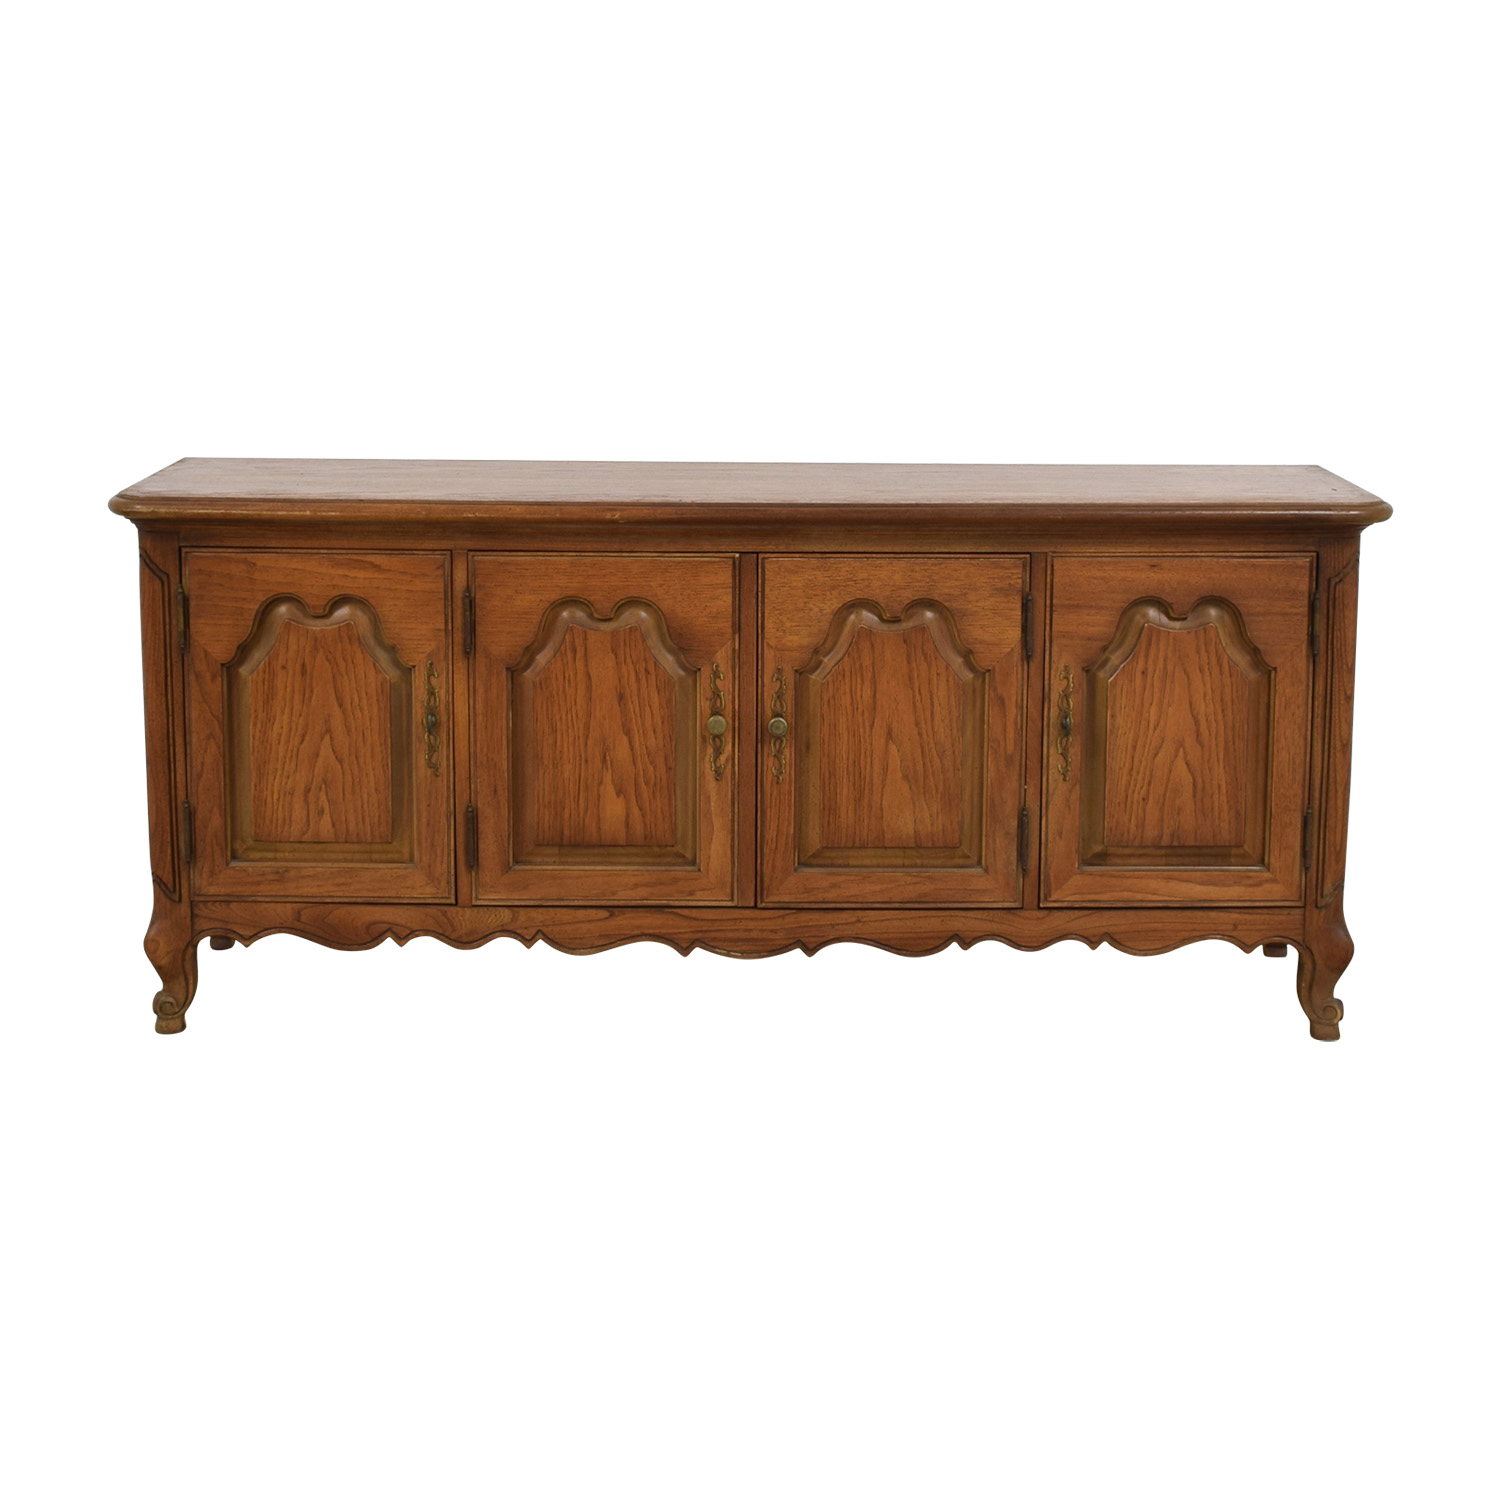 shop Mount Airy Wooden Credenza Mount Airy Storage